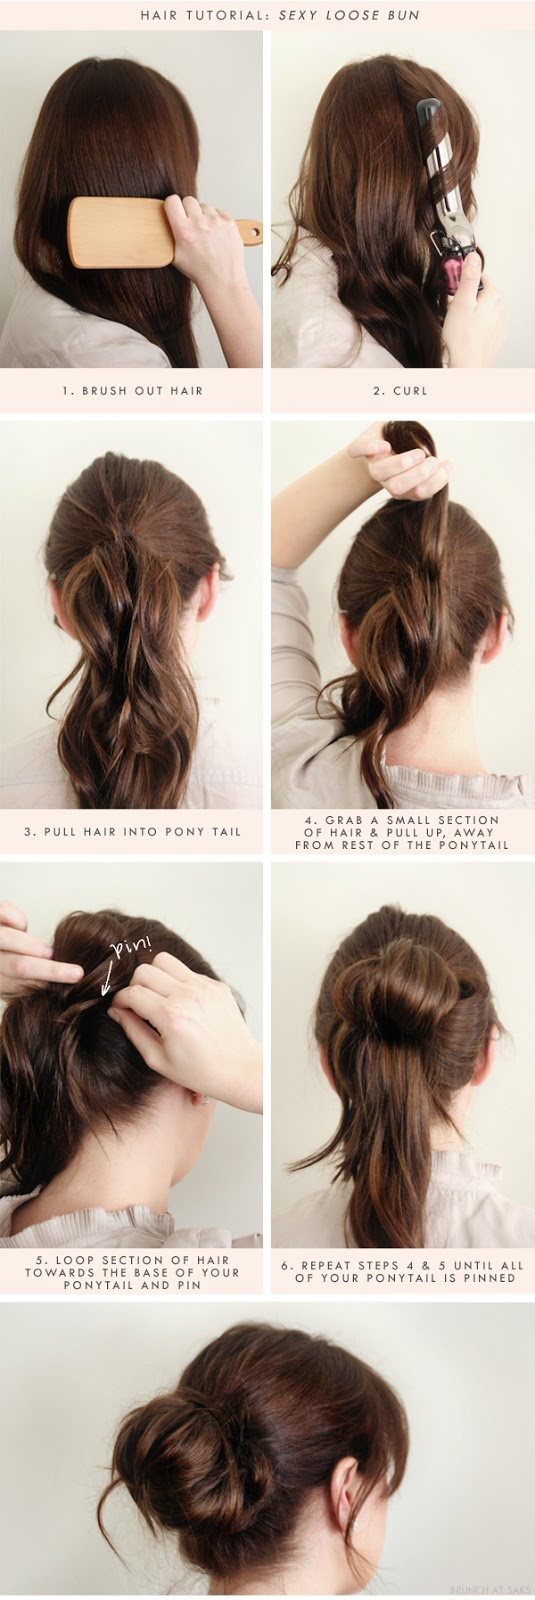 Top 25 messy hair bun tutorials perfect for those lazy mornings 10 sexy loose buns for those lazy days baditri Image collections